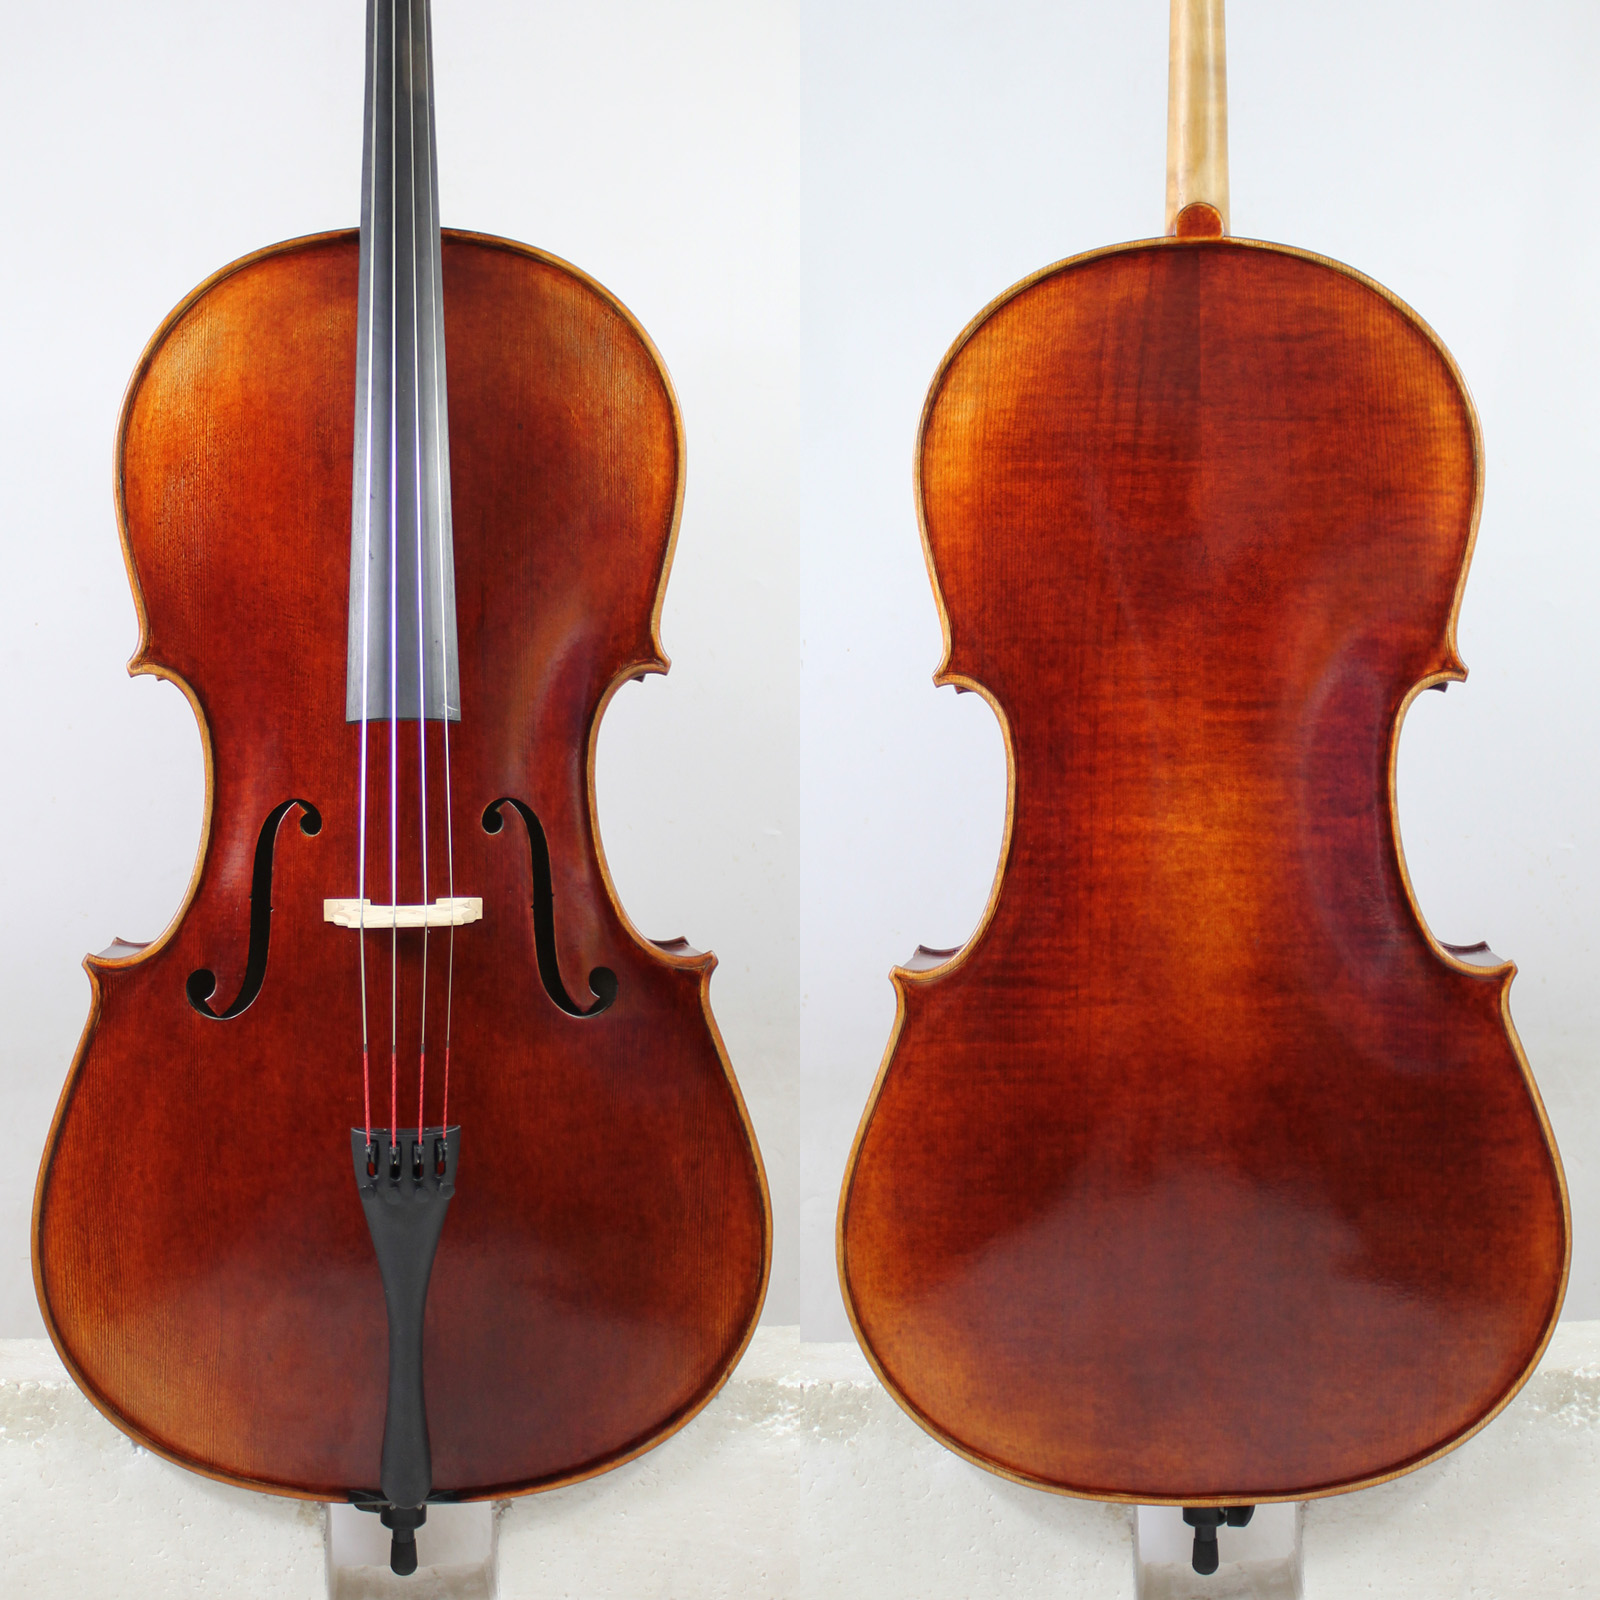 Super Value!A Stradivari 1690 Copy 4/4 Cello! M6135 German Dark Antique!